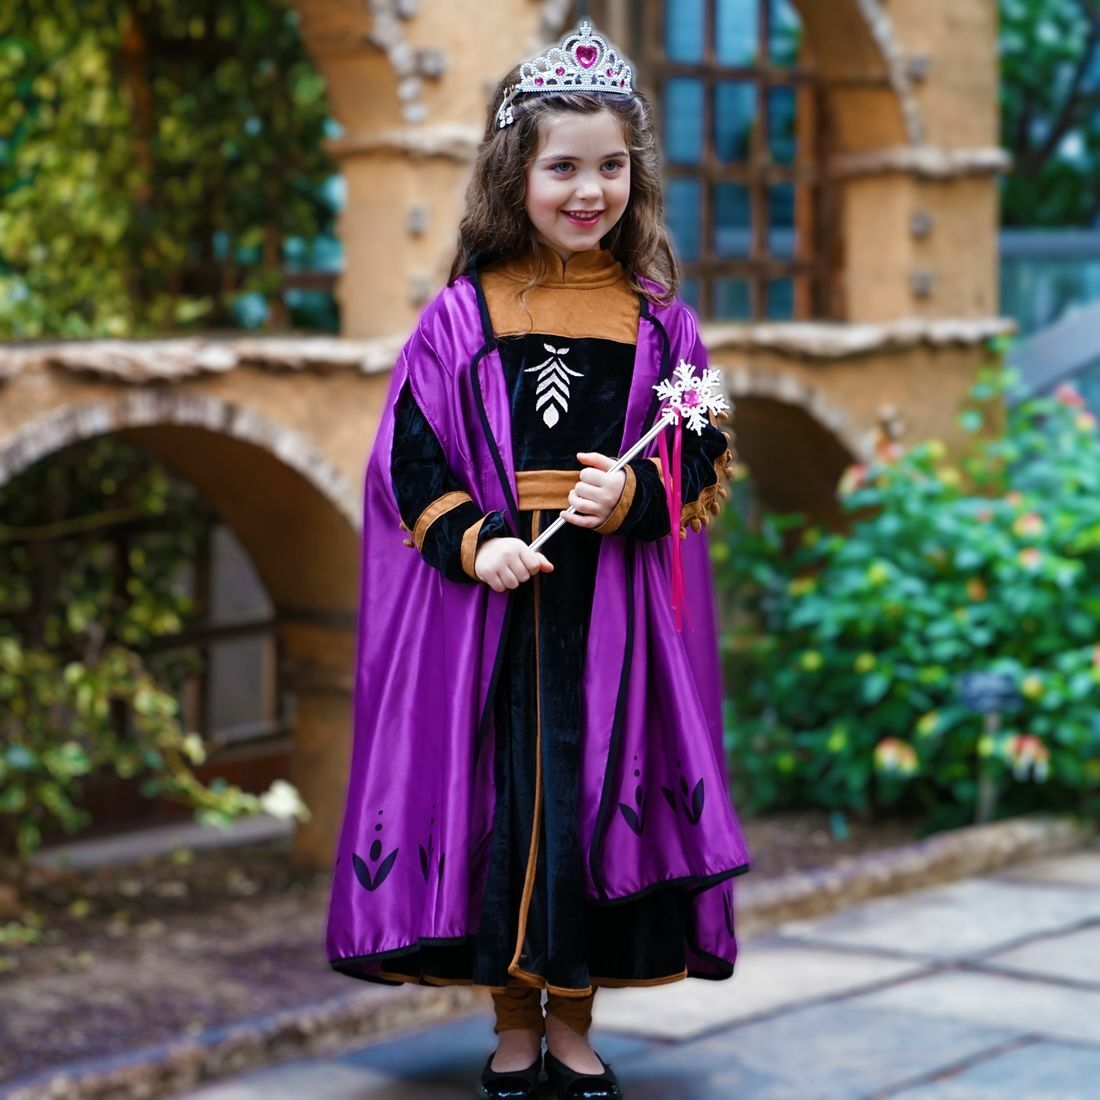 Little girl in a princess costume with a purple cape